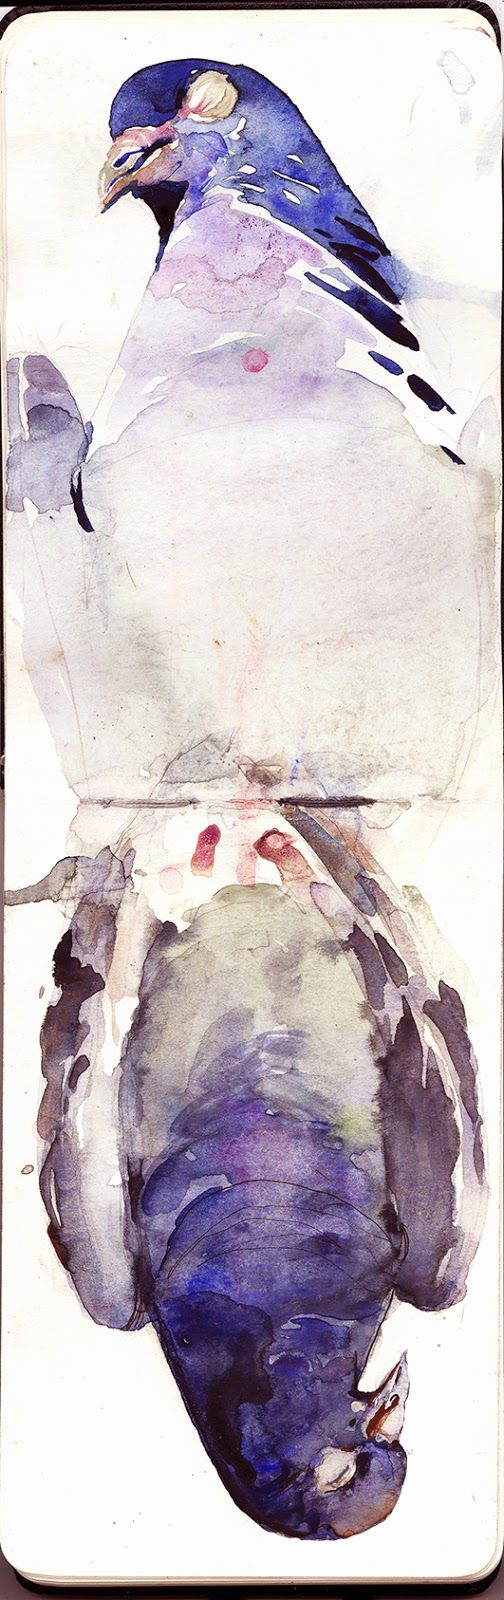 Connecticut watercolor artists directory - Benjamin Bjorklund Hommage To The Pigeon Who Hit My Window